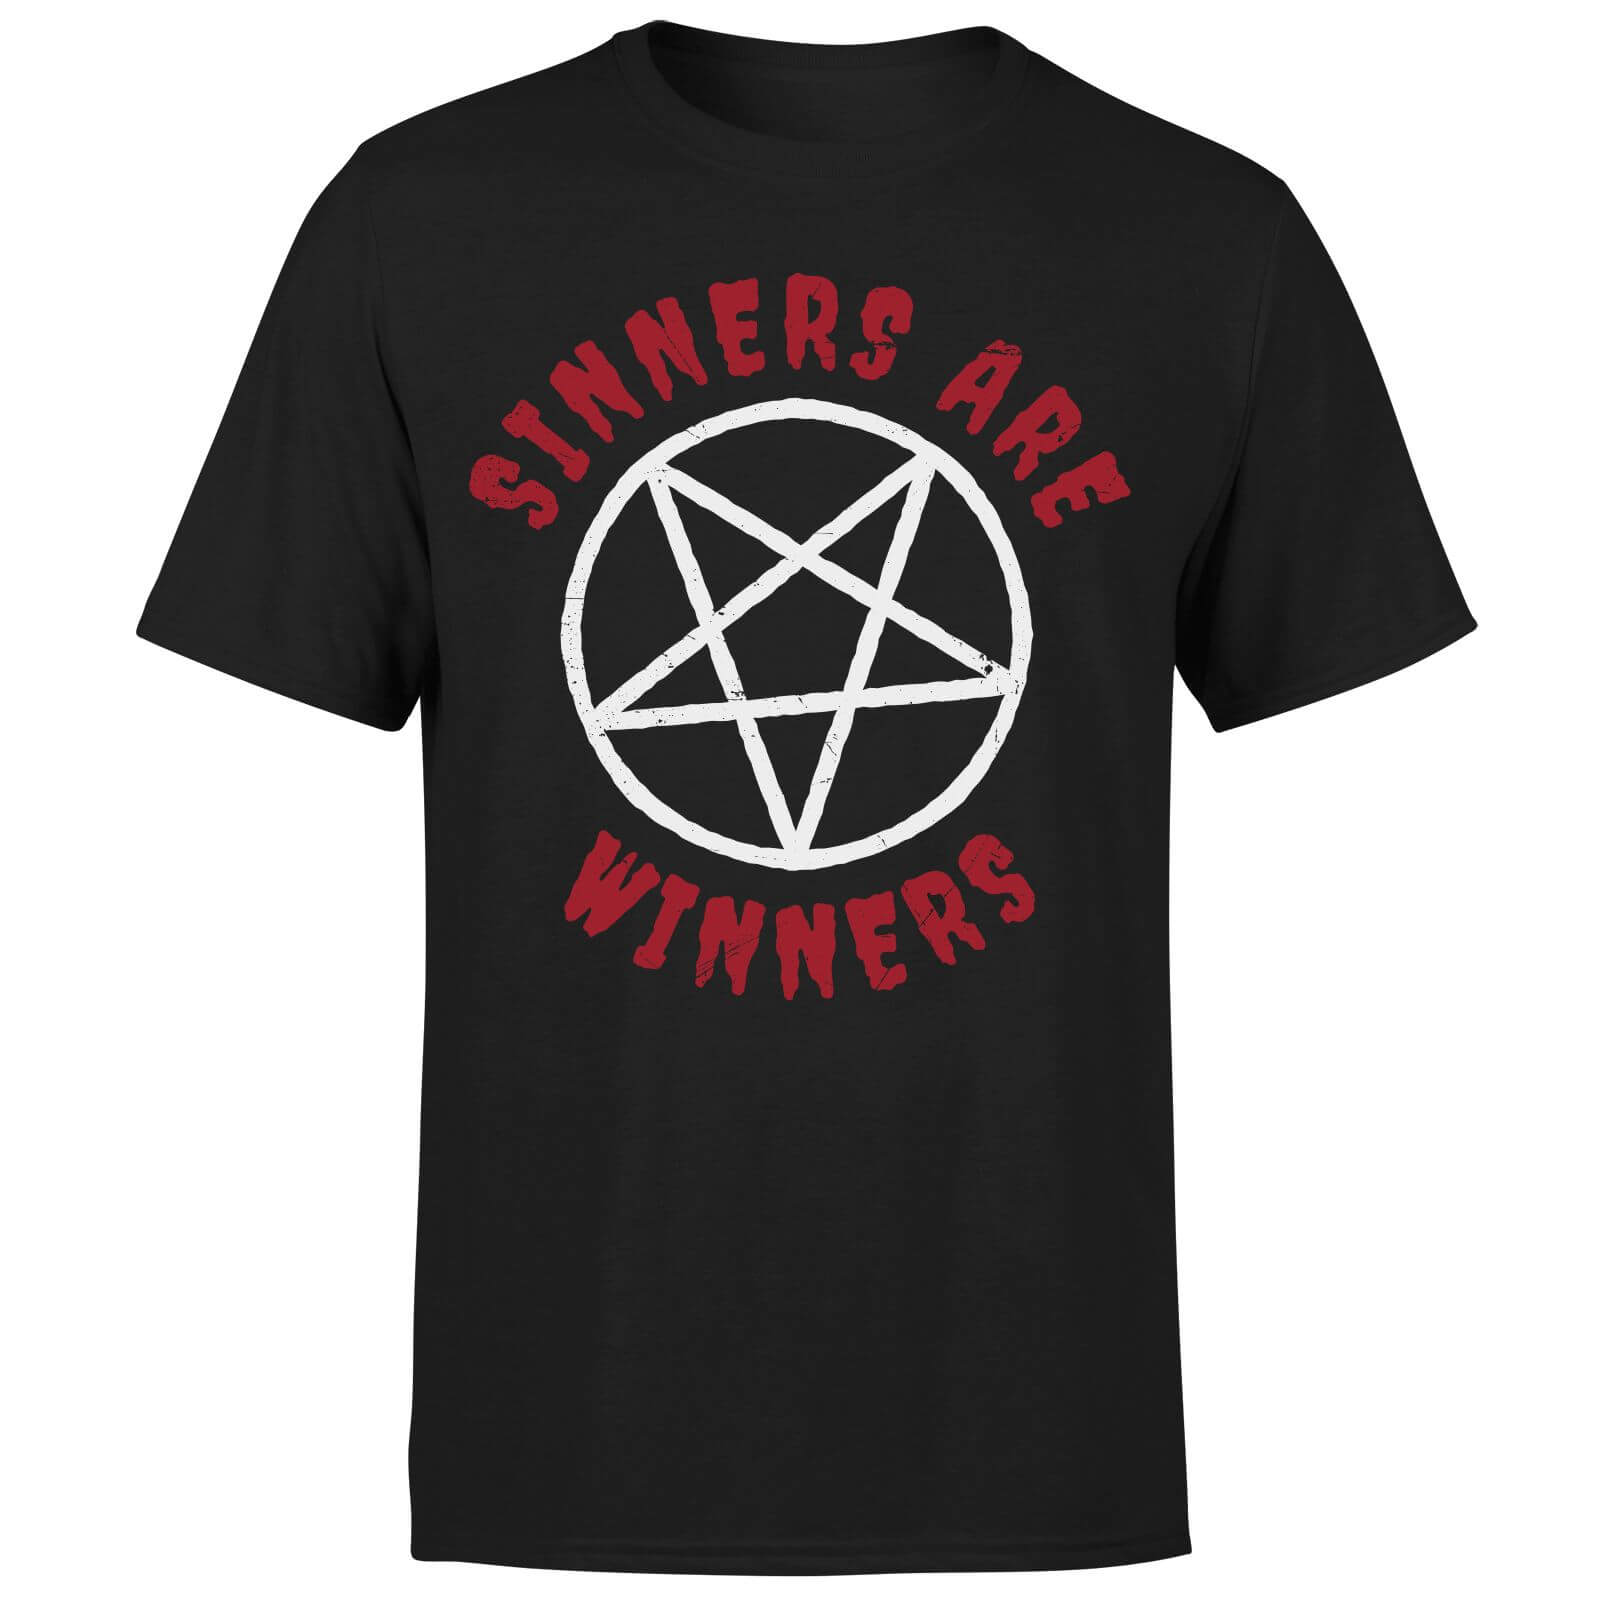 Sinners are Winners T-Shirt - Black